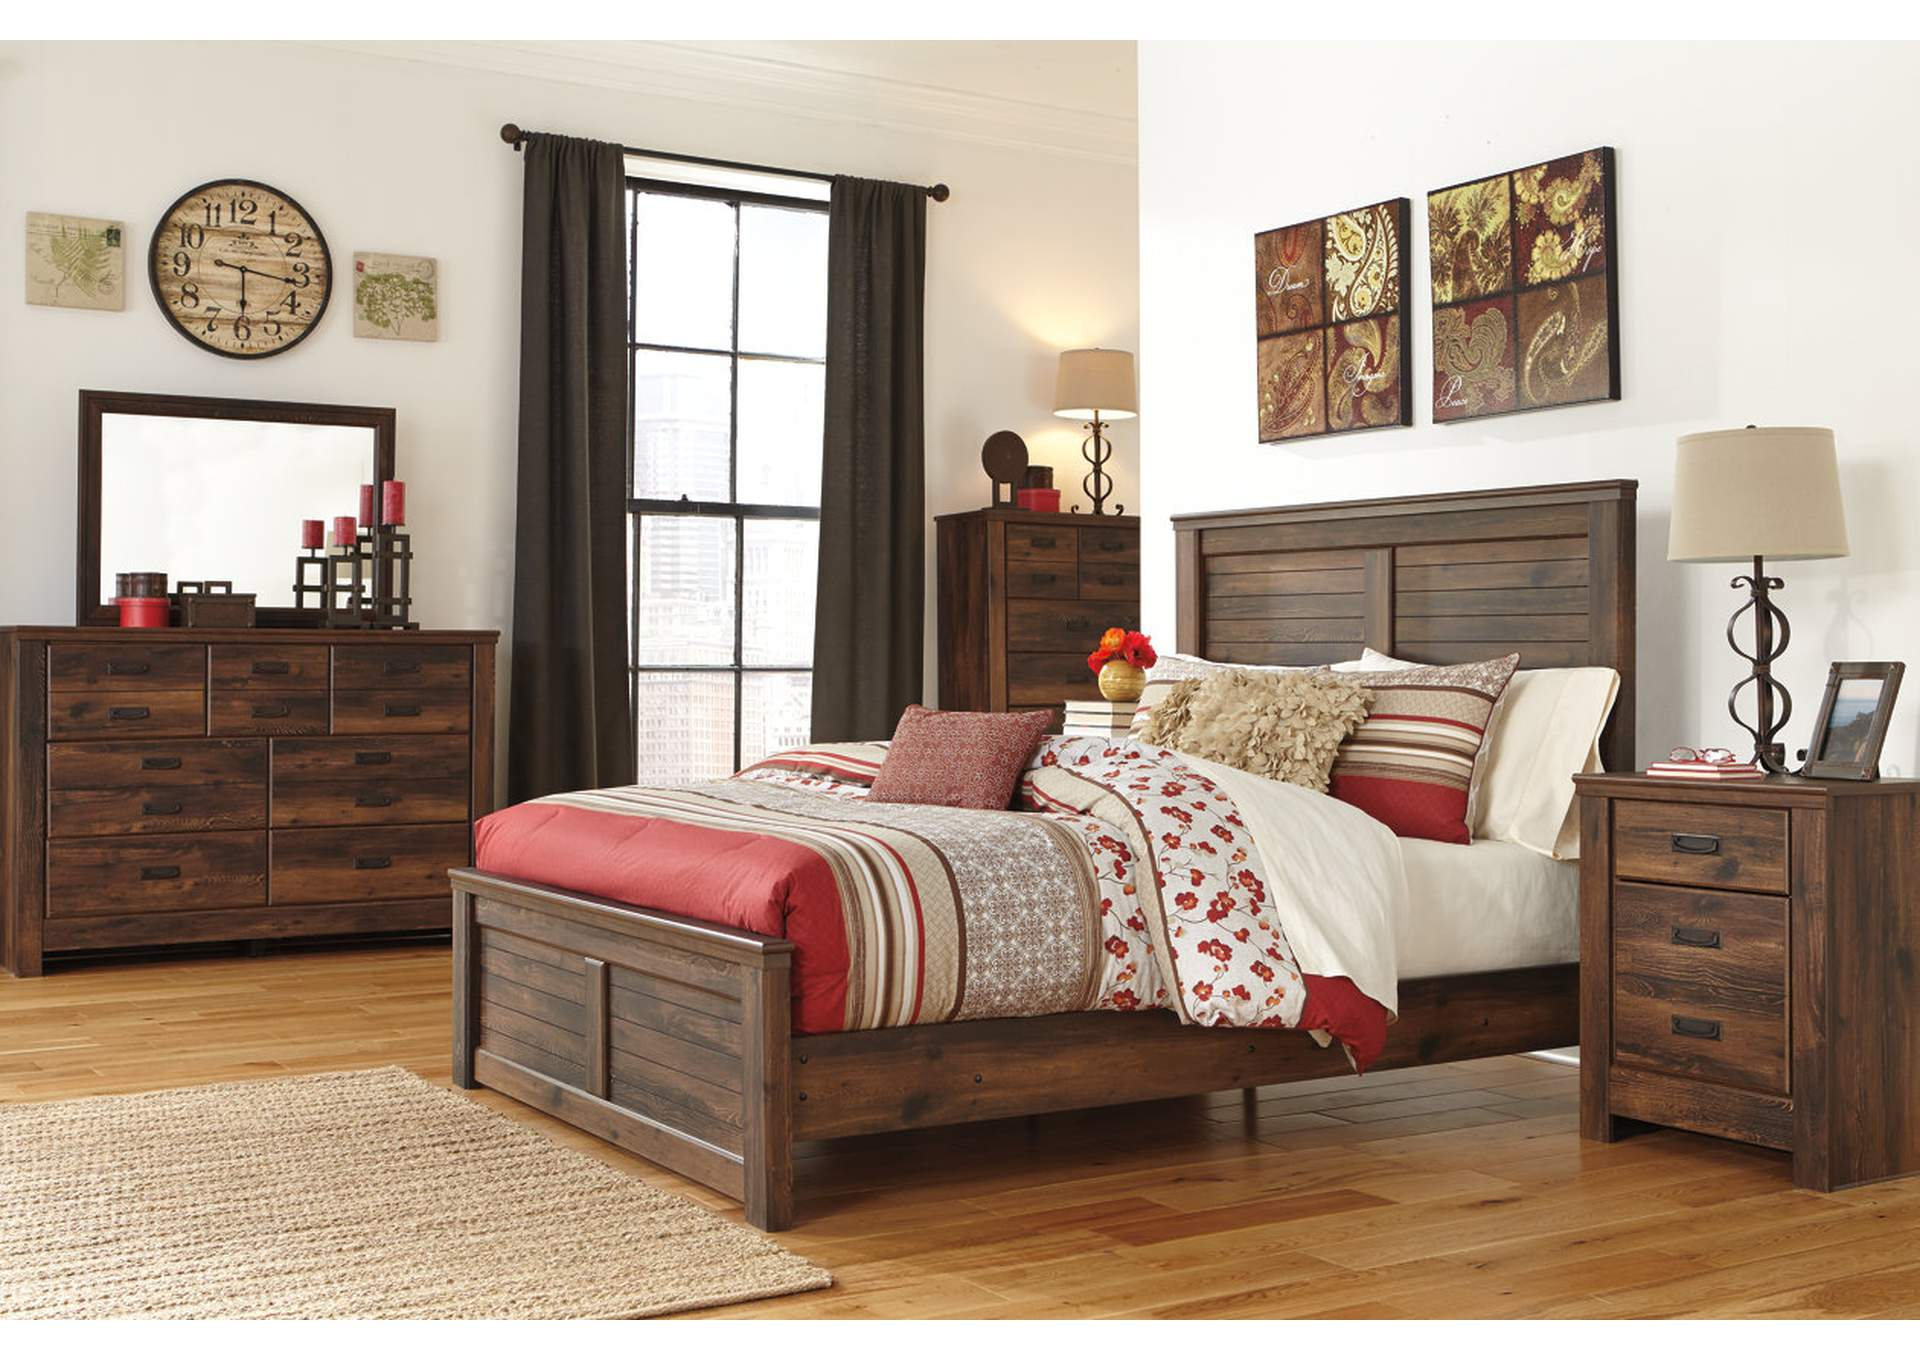 Quinden Queen Panel Bed w/Dresser, Mirror, Drawer Chest & Nightstand,Signature Design by Ashley